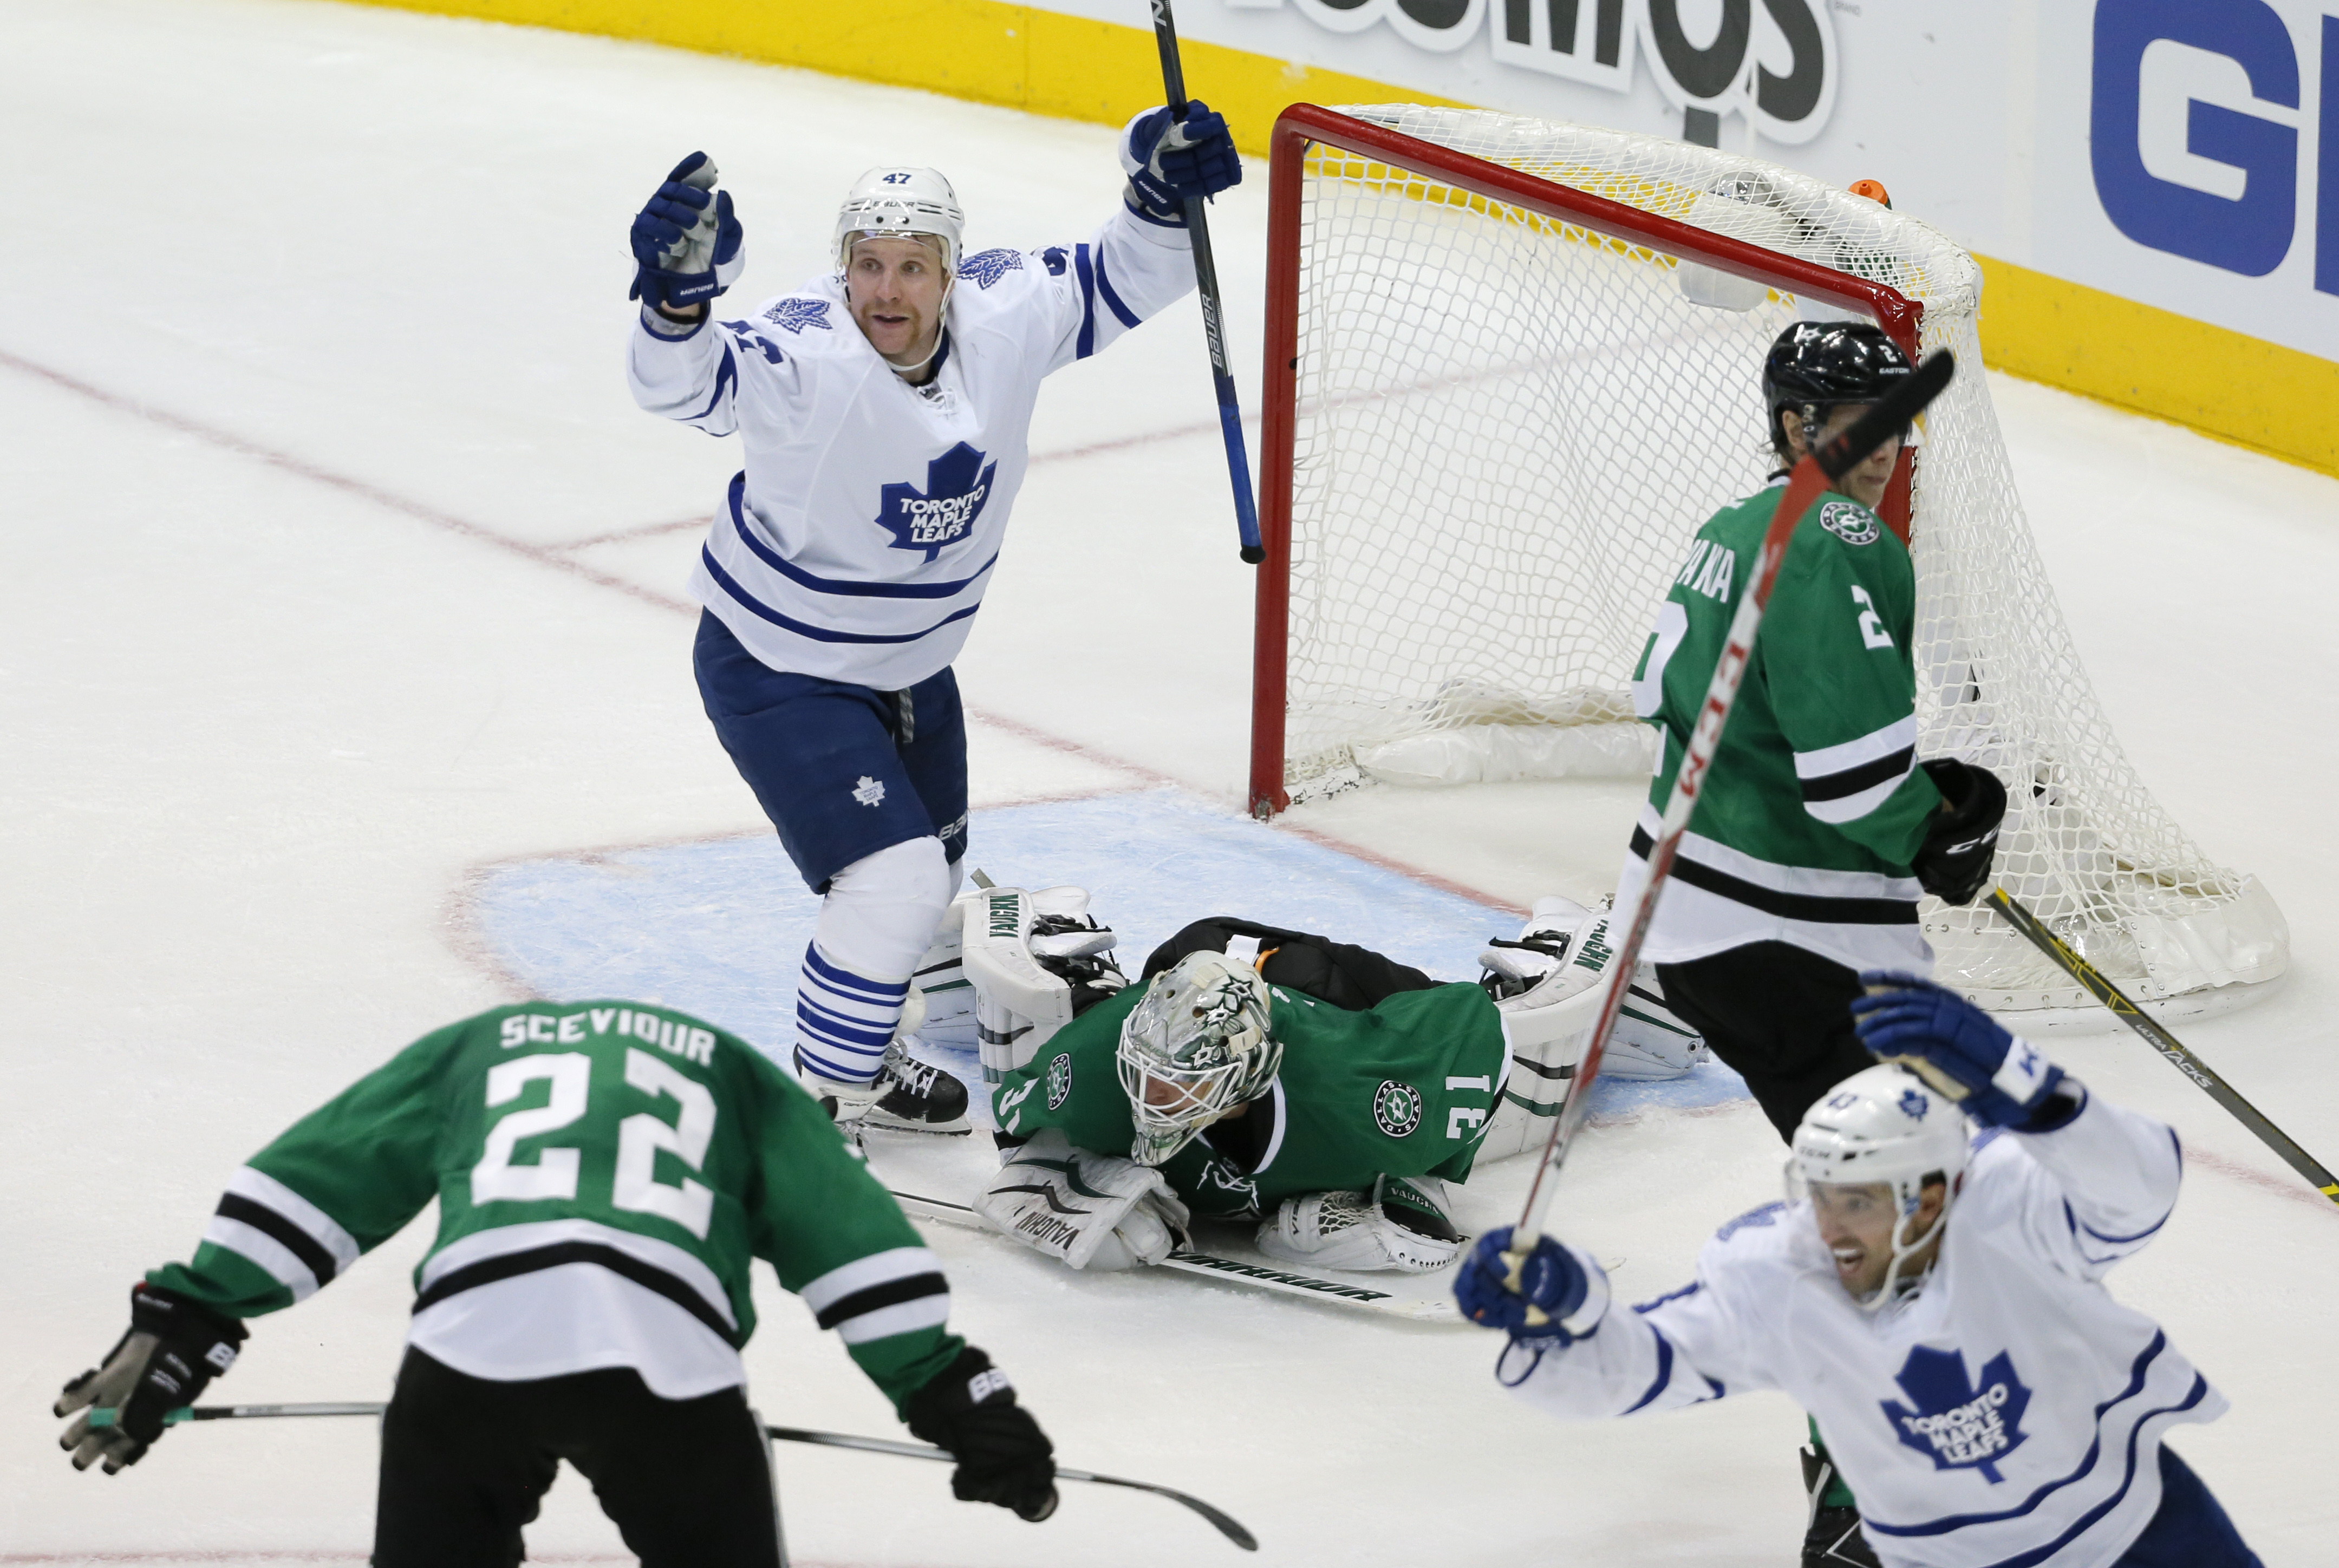 Toronto Maple Leafs' Leo Komarov (47) and Nazem Kadri (43) celebrate a goal by Jake Gardiner, as Dallas Stars' Colton Sceviour (22), Antti Niemi (31) and Jyrki Jokipakka (2) of Finland react to the score during the third period of an NHL hockey game Tuesd